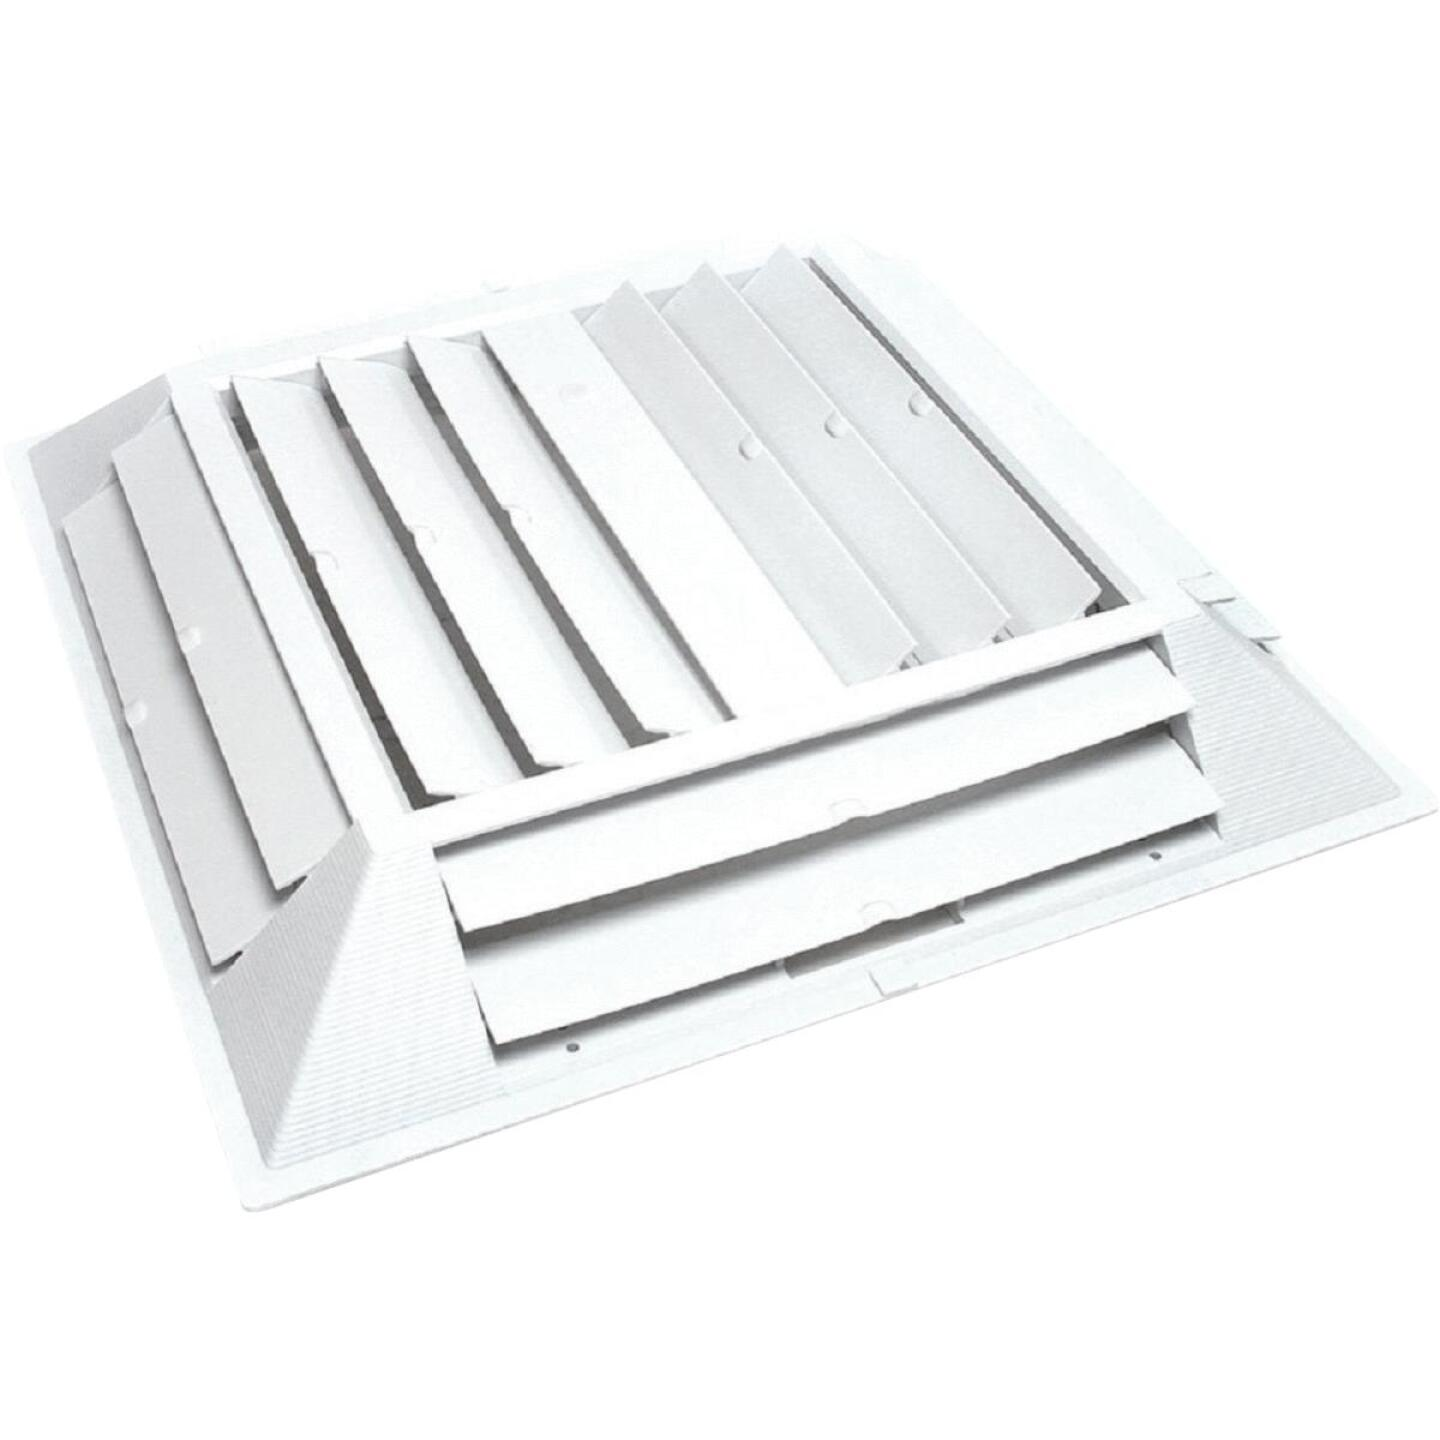 Dial 22-1/2 In. W x 22-1/2 In. H Six-Way Evaporative Cooler Grille Image 1